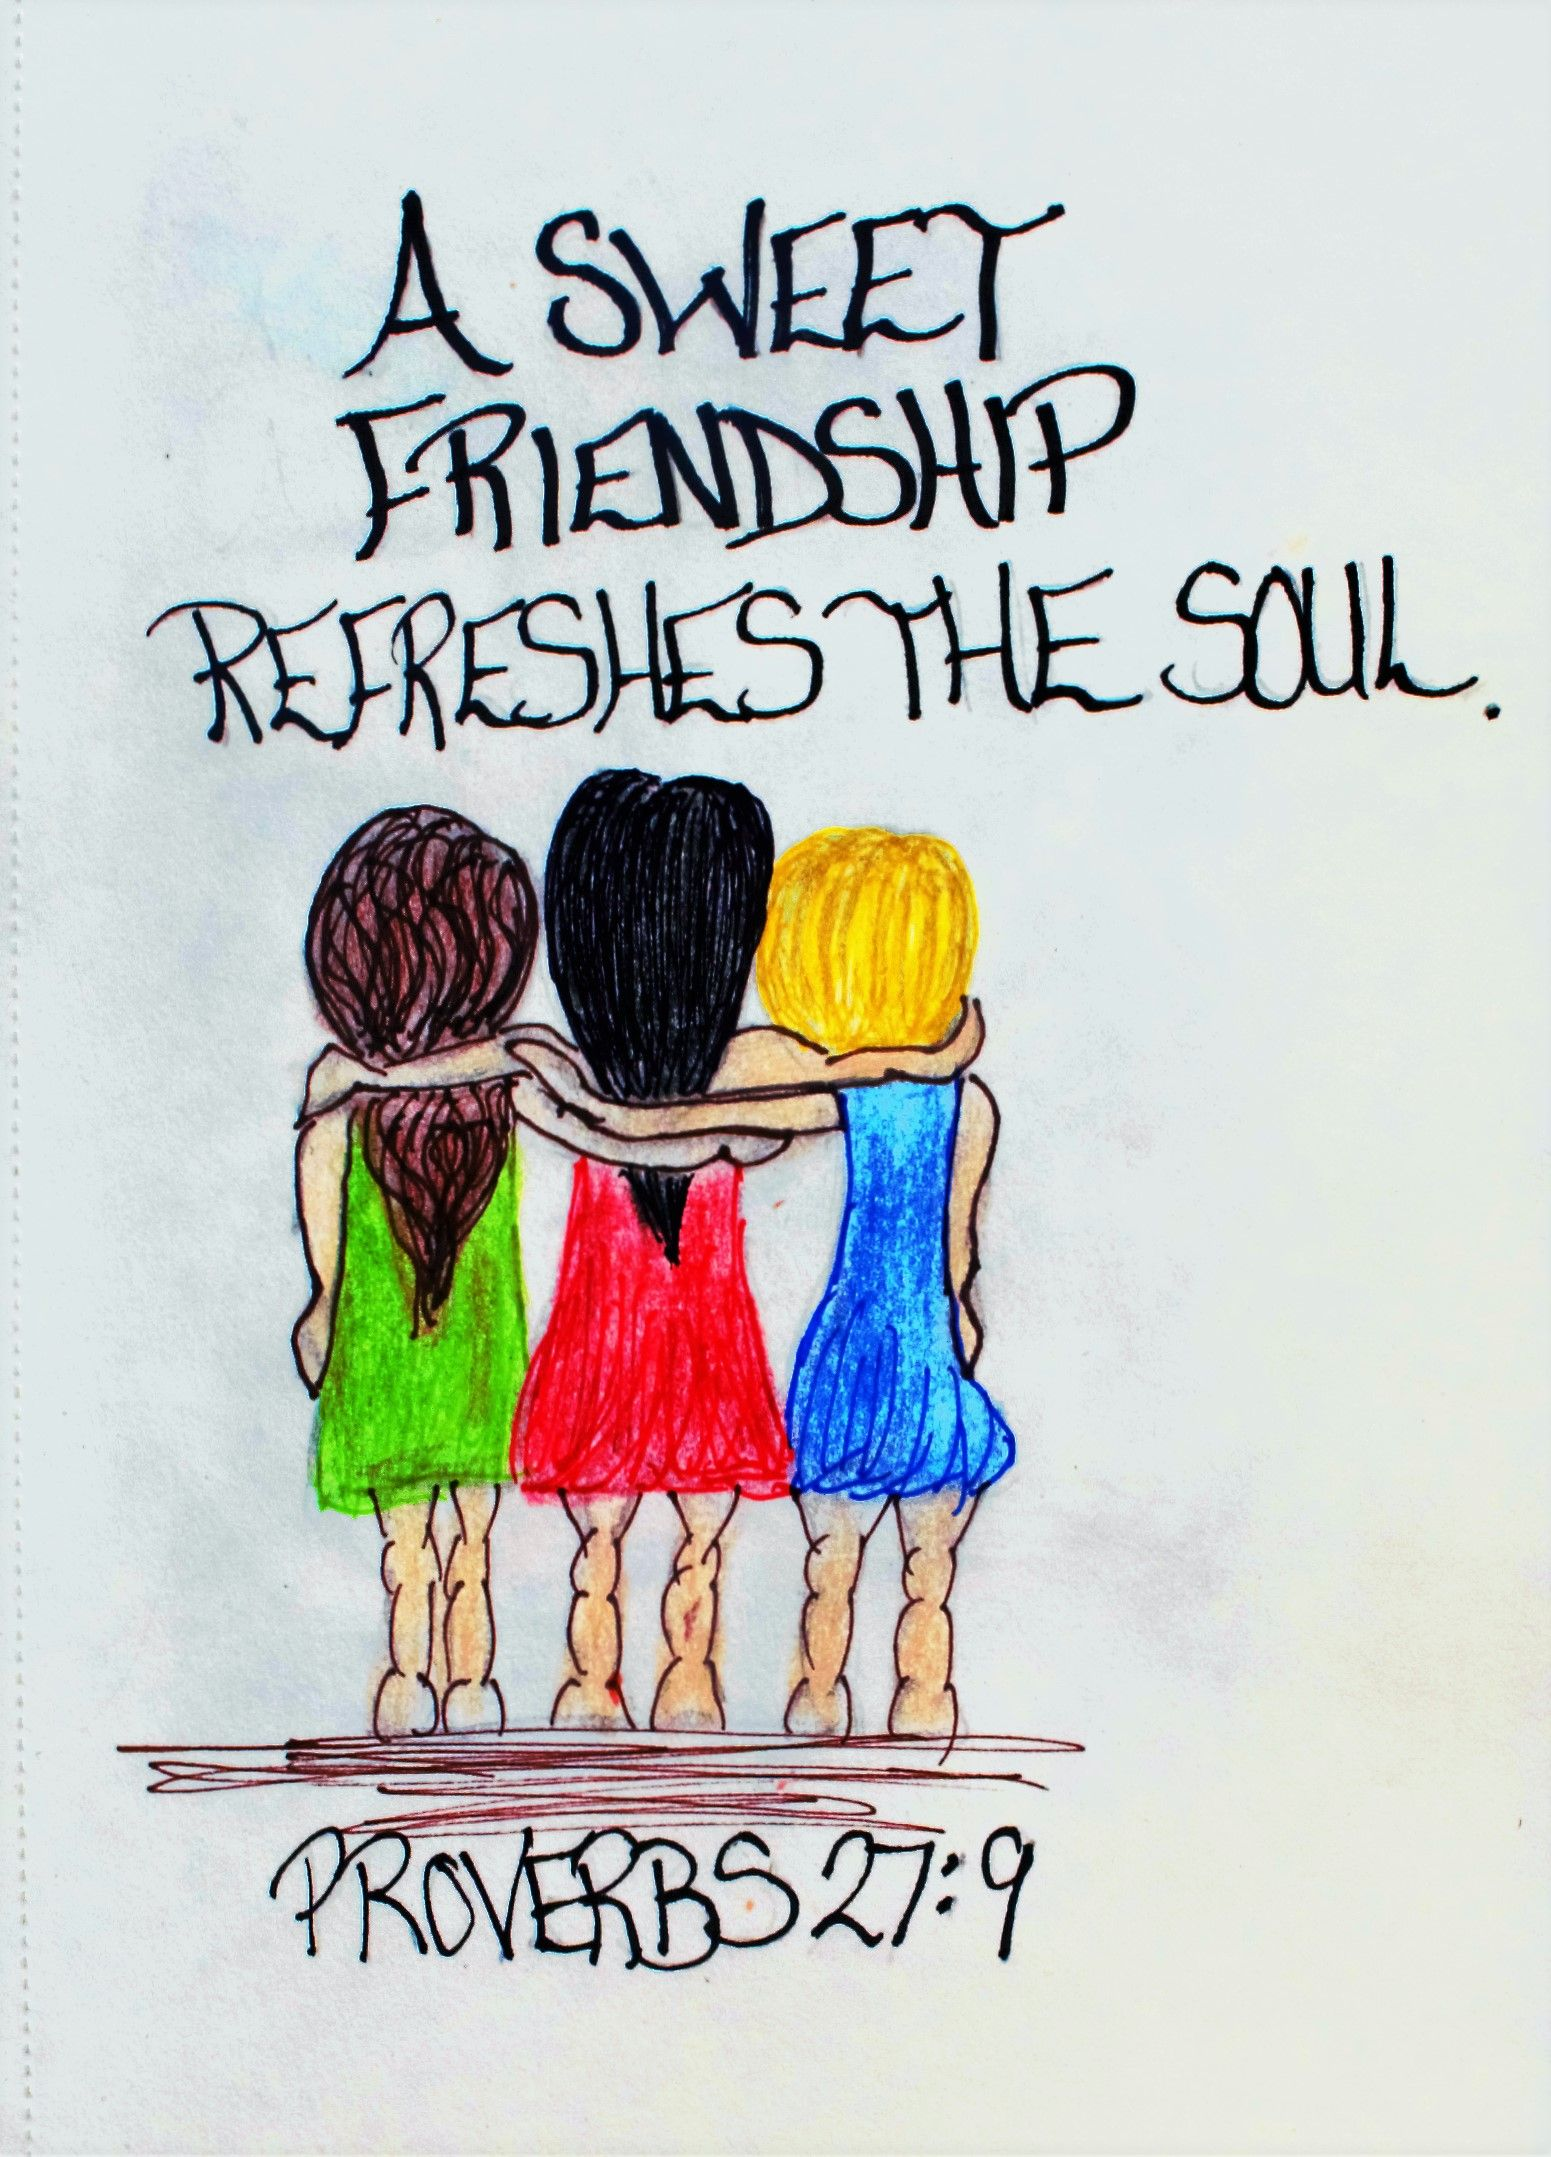 A Sweet Friendship Refreshes The Soul Proverbs 279